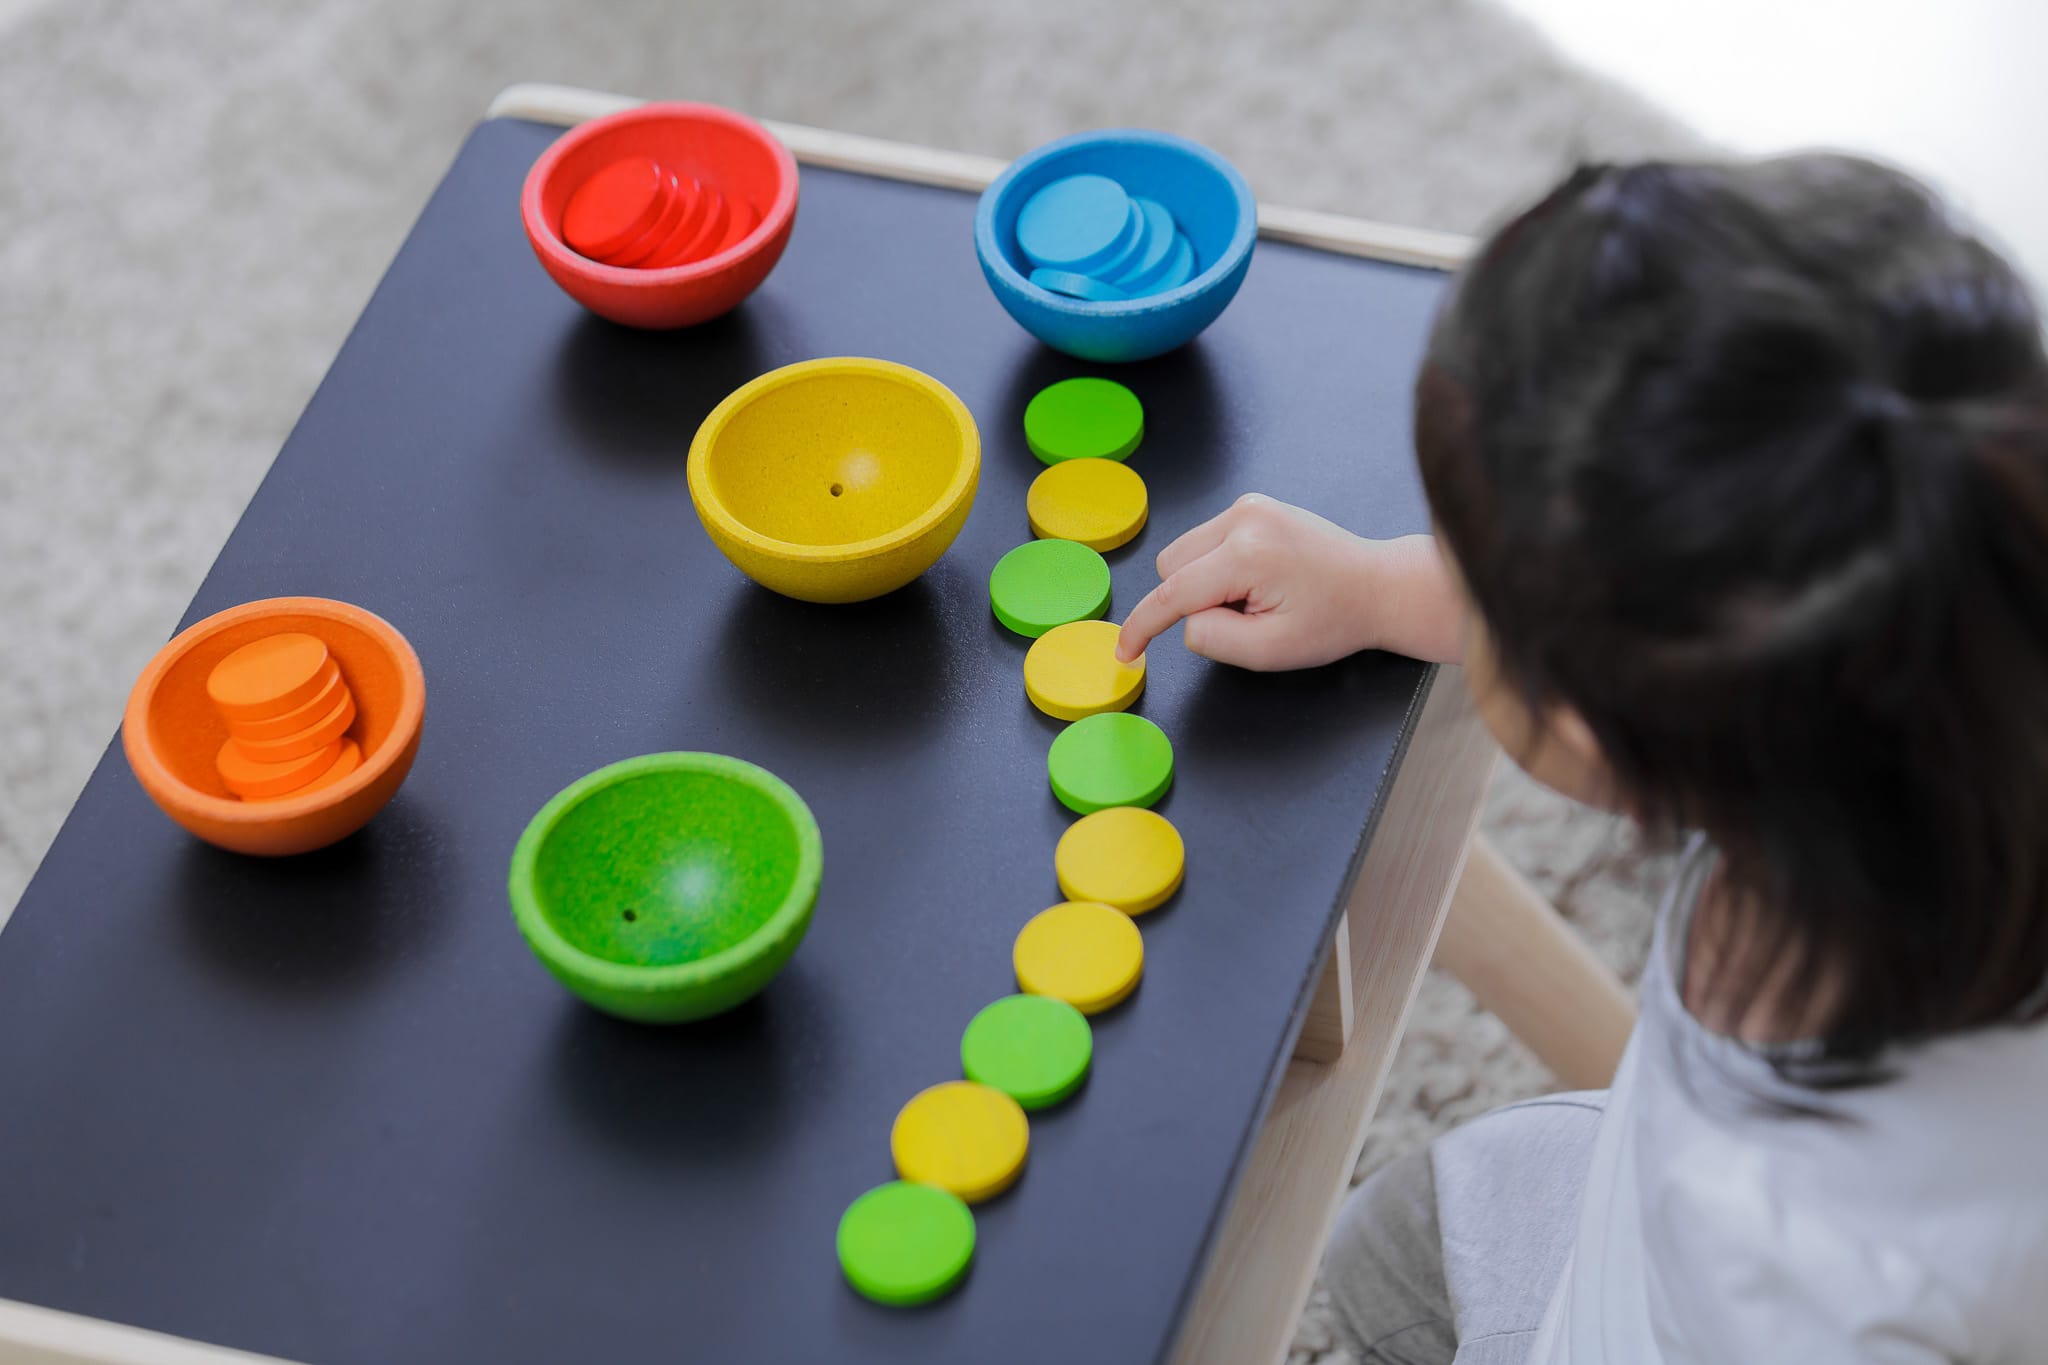 5360_PlanToys_SORT_and_COUNT_CUPS_Learning_and_Education_Mathematical_Fine_Motor_Coordination_18m_Wooden_toys_Education_toys_Safety_Toys_Non-toxic_7.jpg